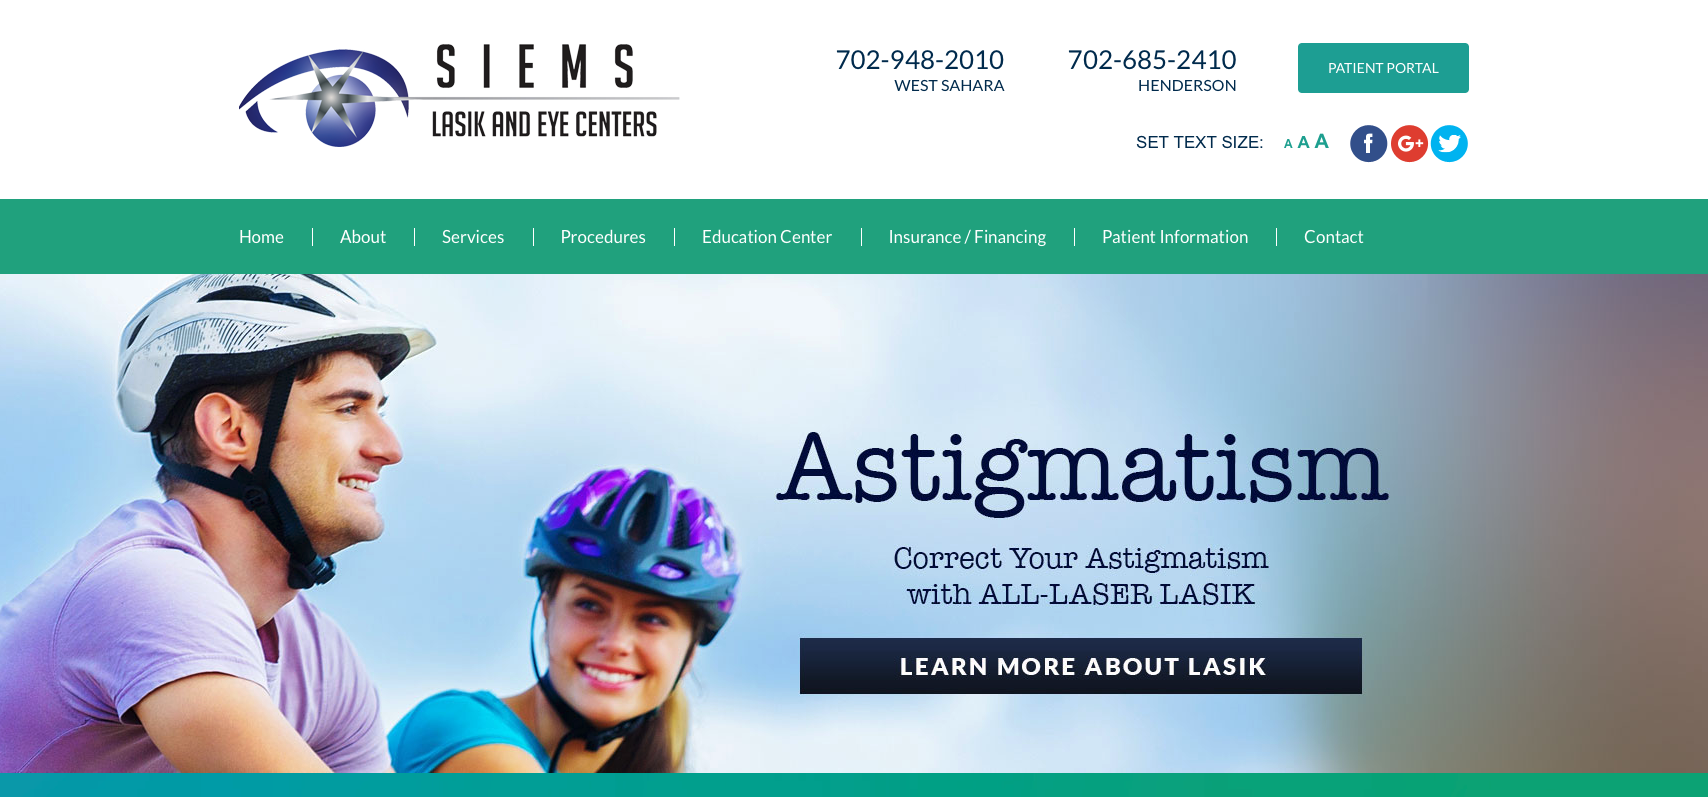 Siems Laser & Eye Centers